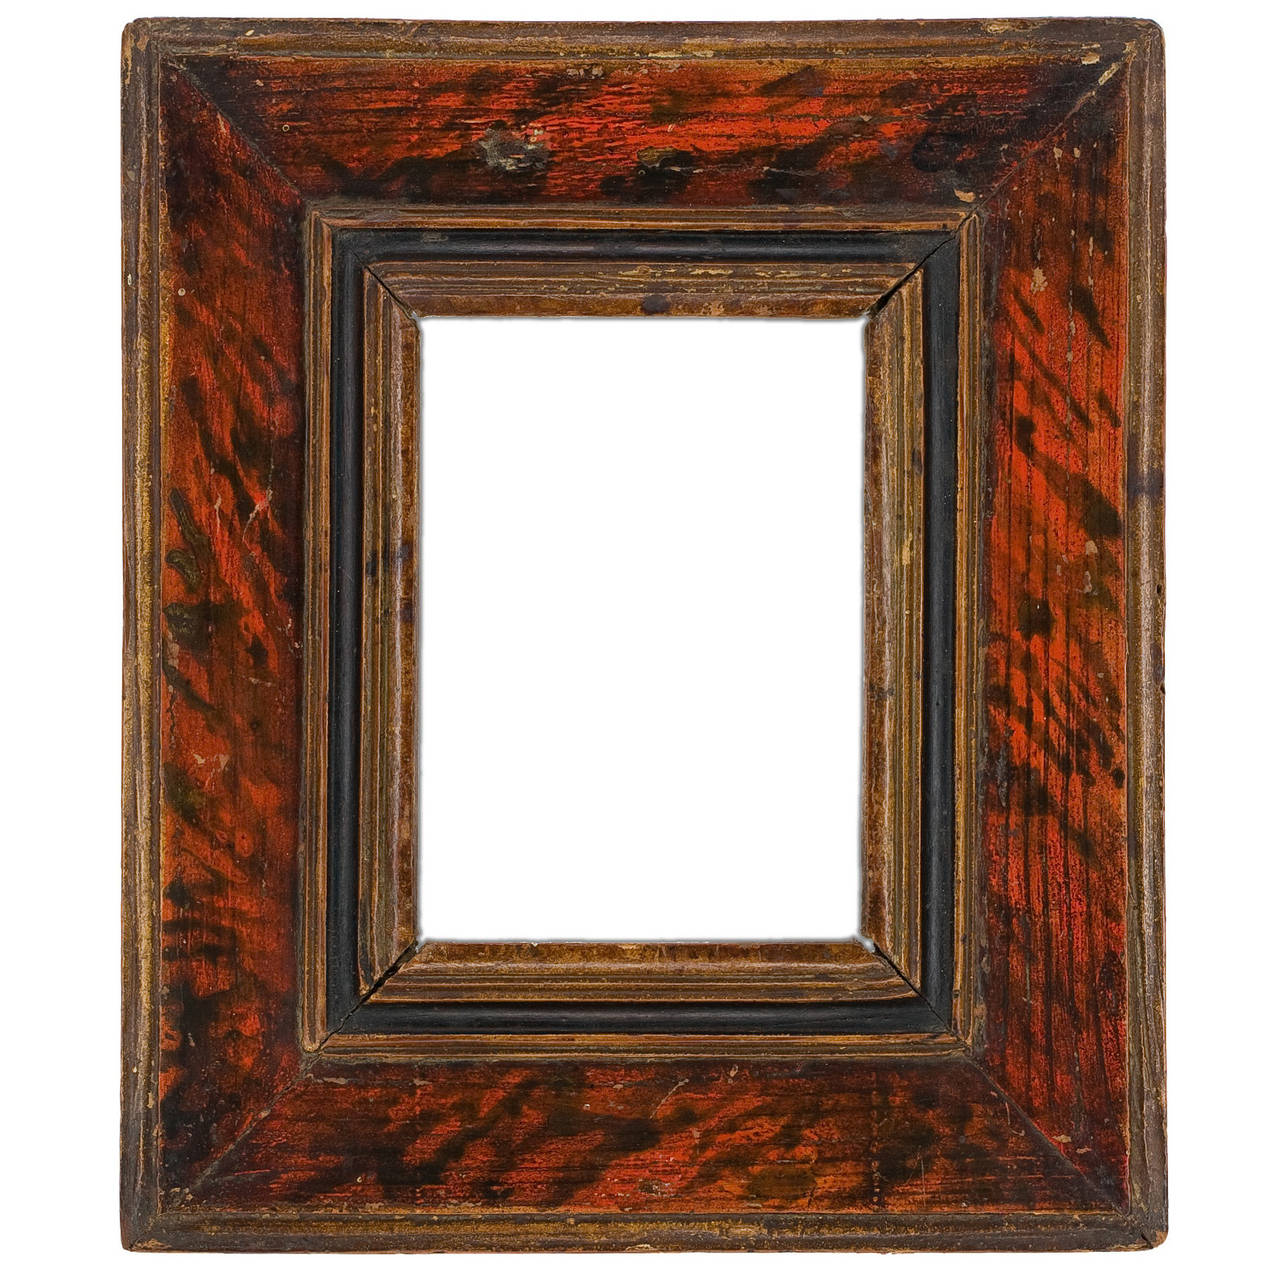 17th century spanish marble panel frame for sale at 1stdibs. Black Bedroom Furniture Sets. Home Design Ideas